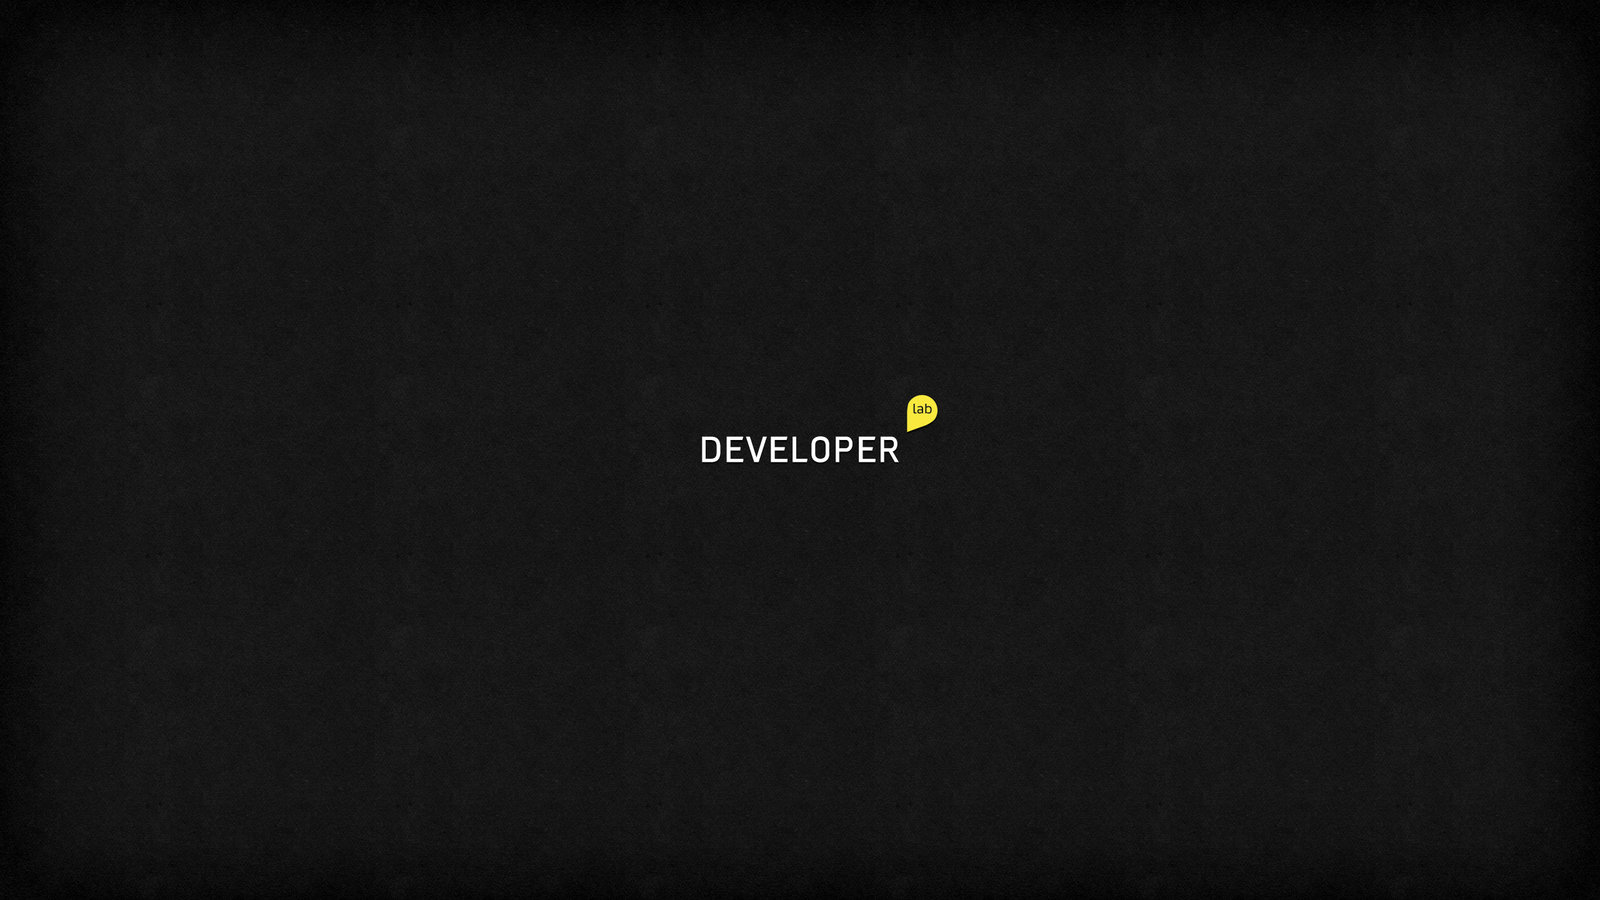 Developer Wallpaper Developer lab black minimalist 1600x900